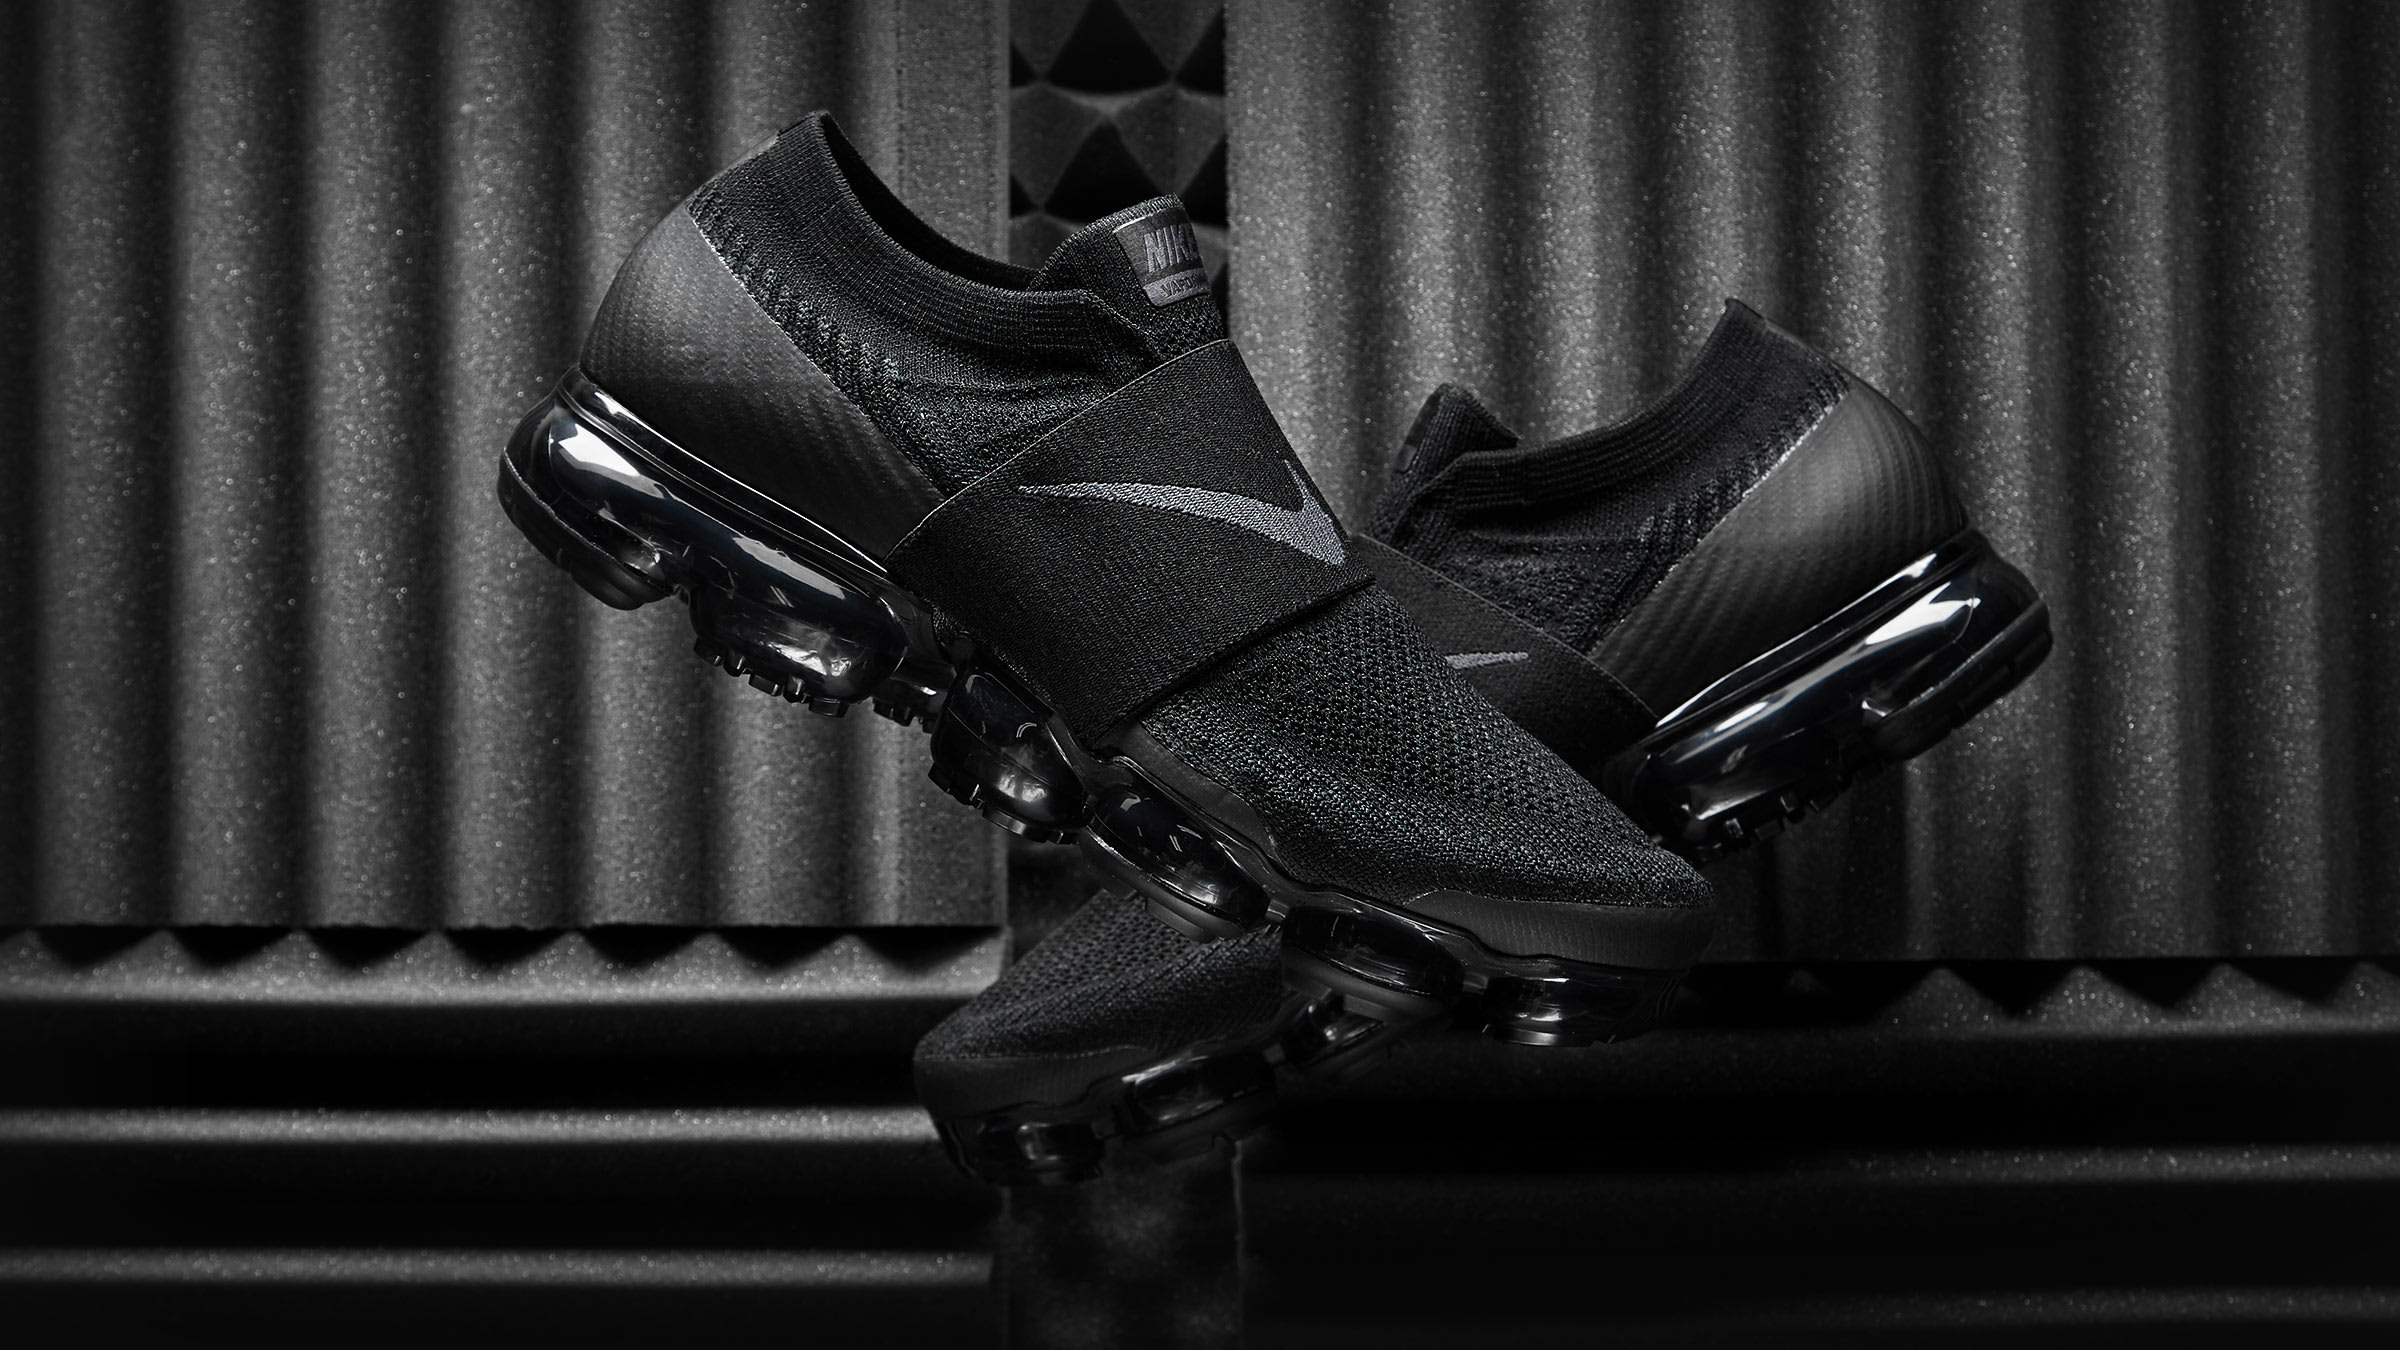 d38f3a49dc Nike Air Vapormax Flyknit Moc (Black & Anthracite)